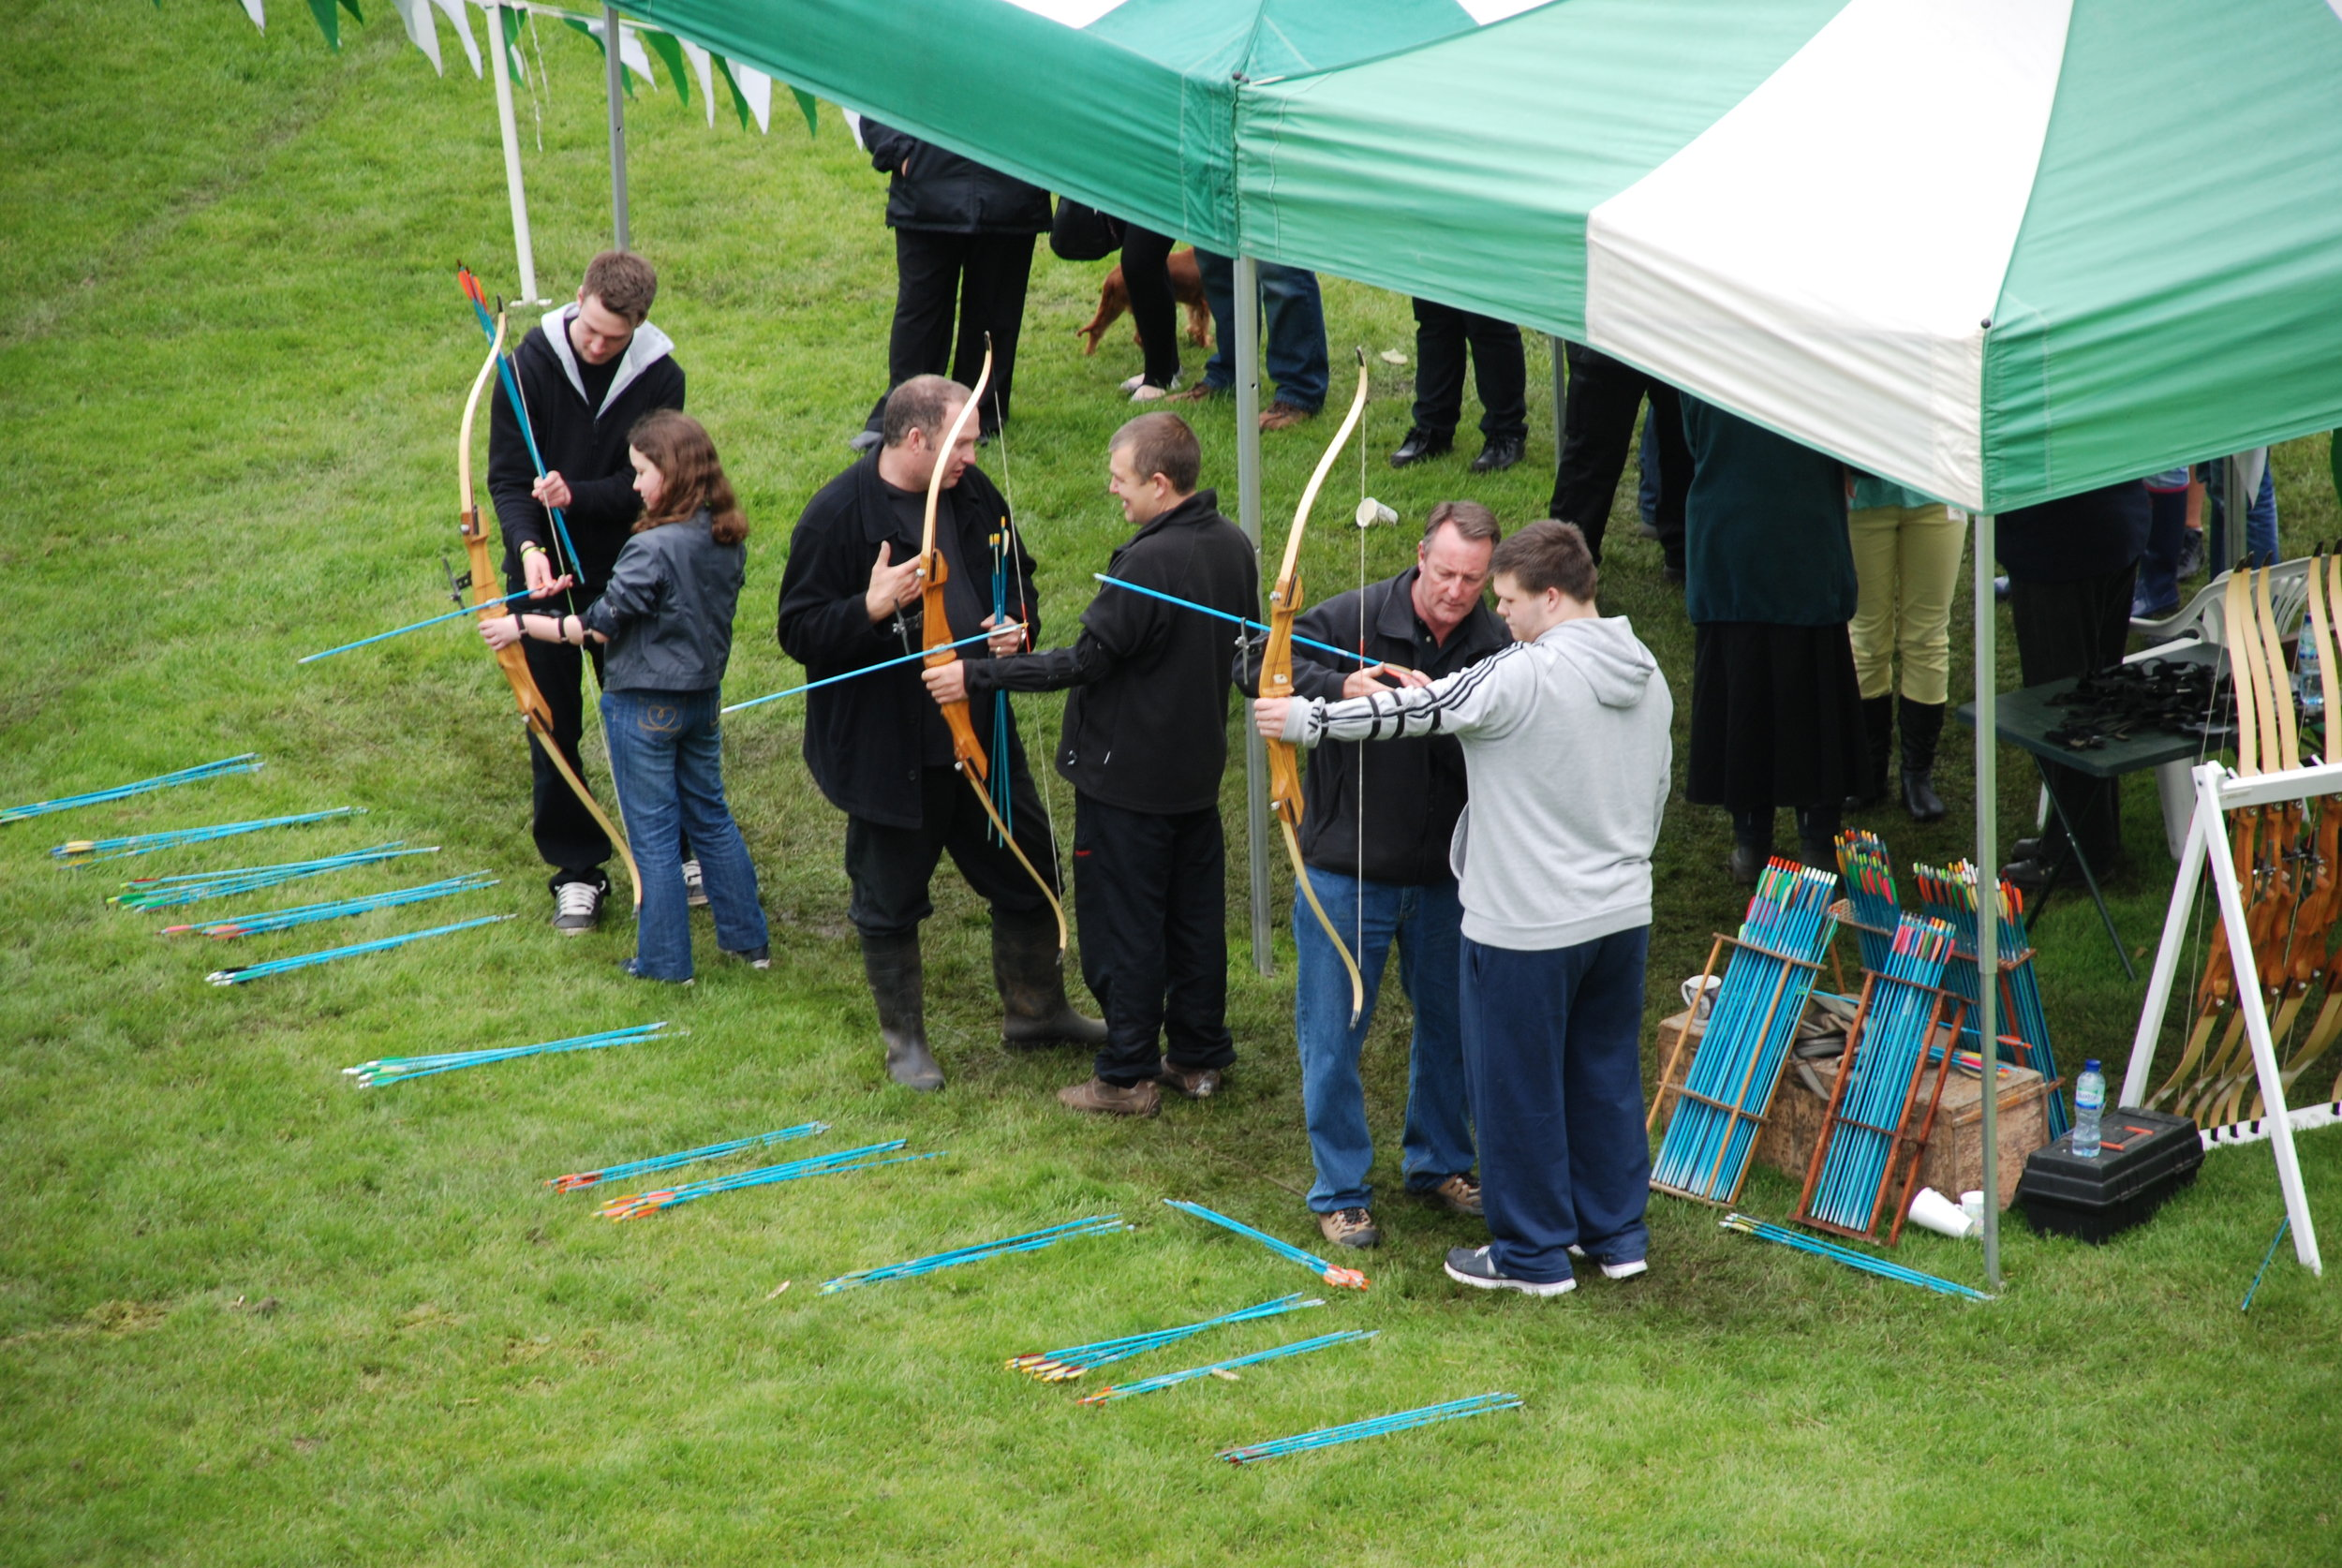 archery at CCC events